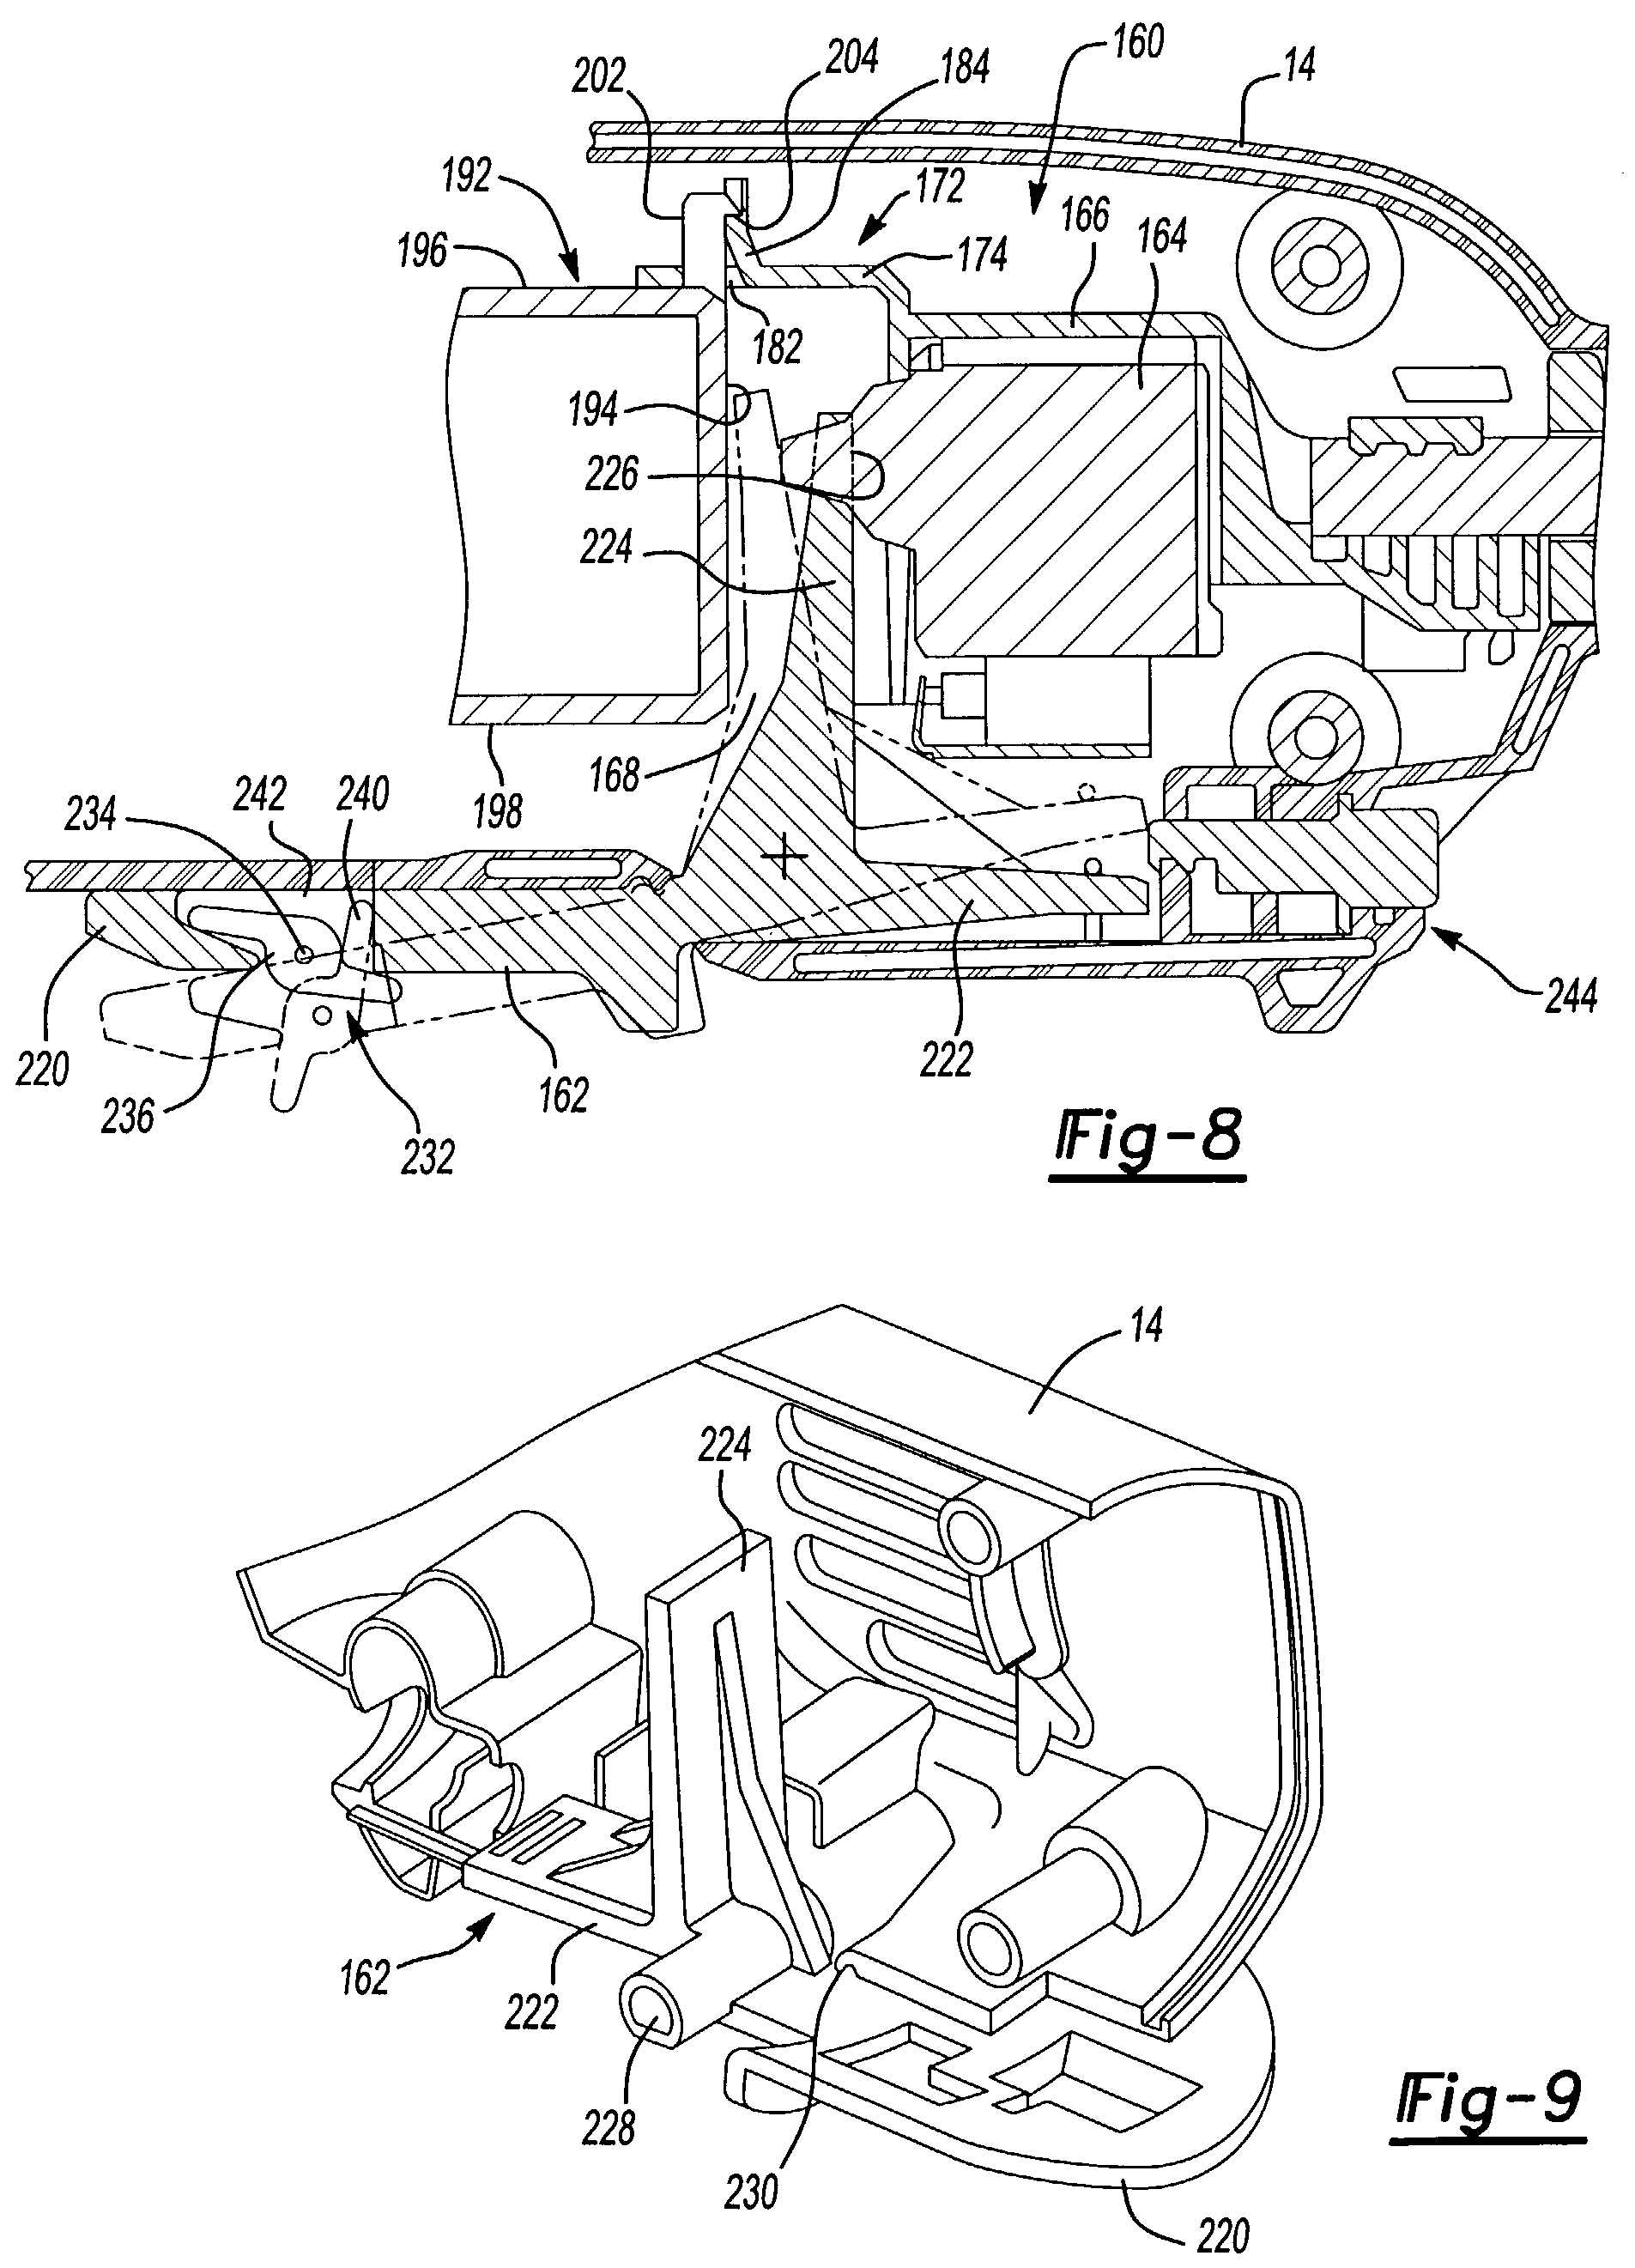 surface grinder wiring diagram wiring diagram and schematic patent ep0713434b1 z axis drive for 2 hine tool google